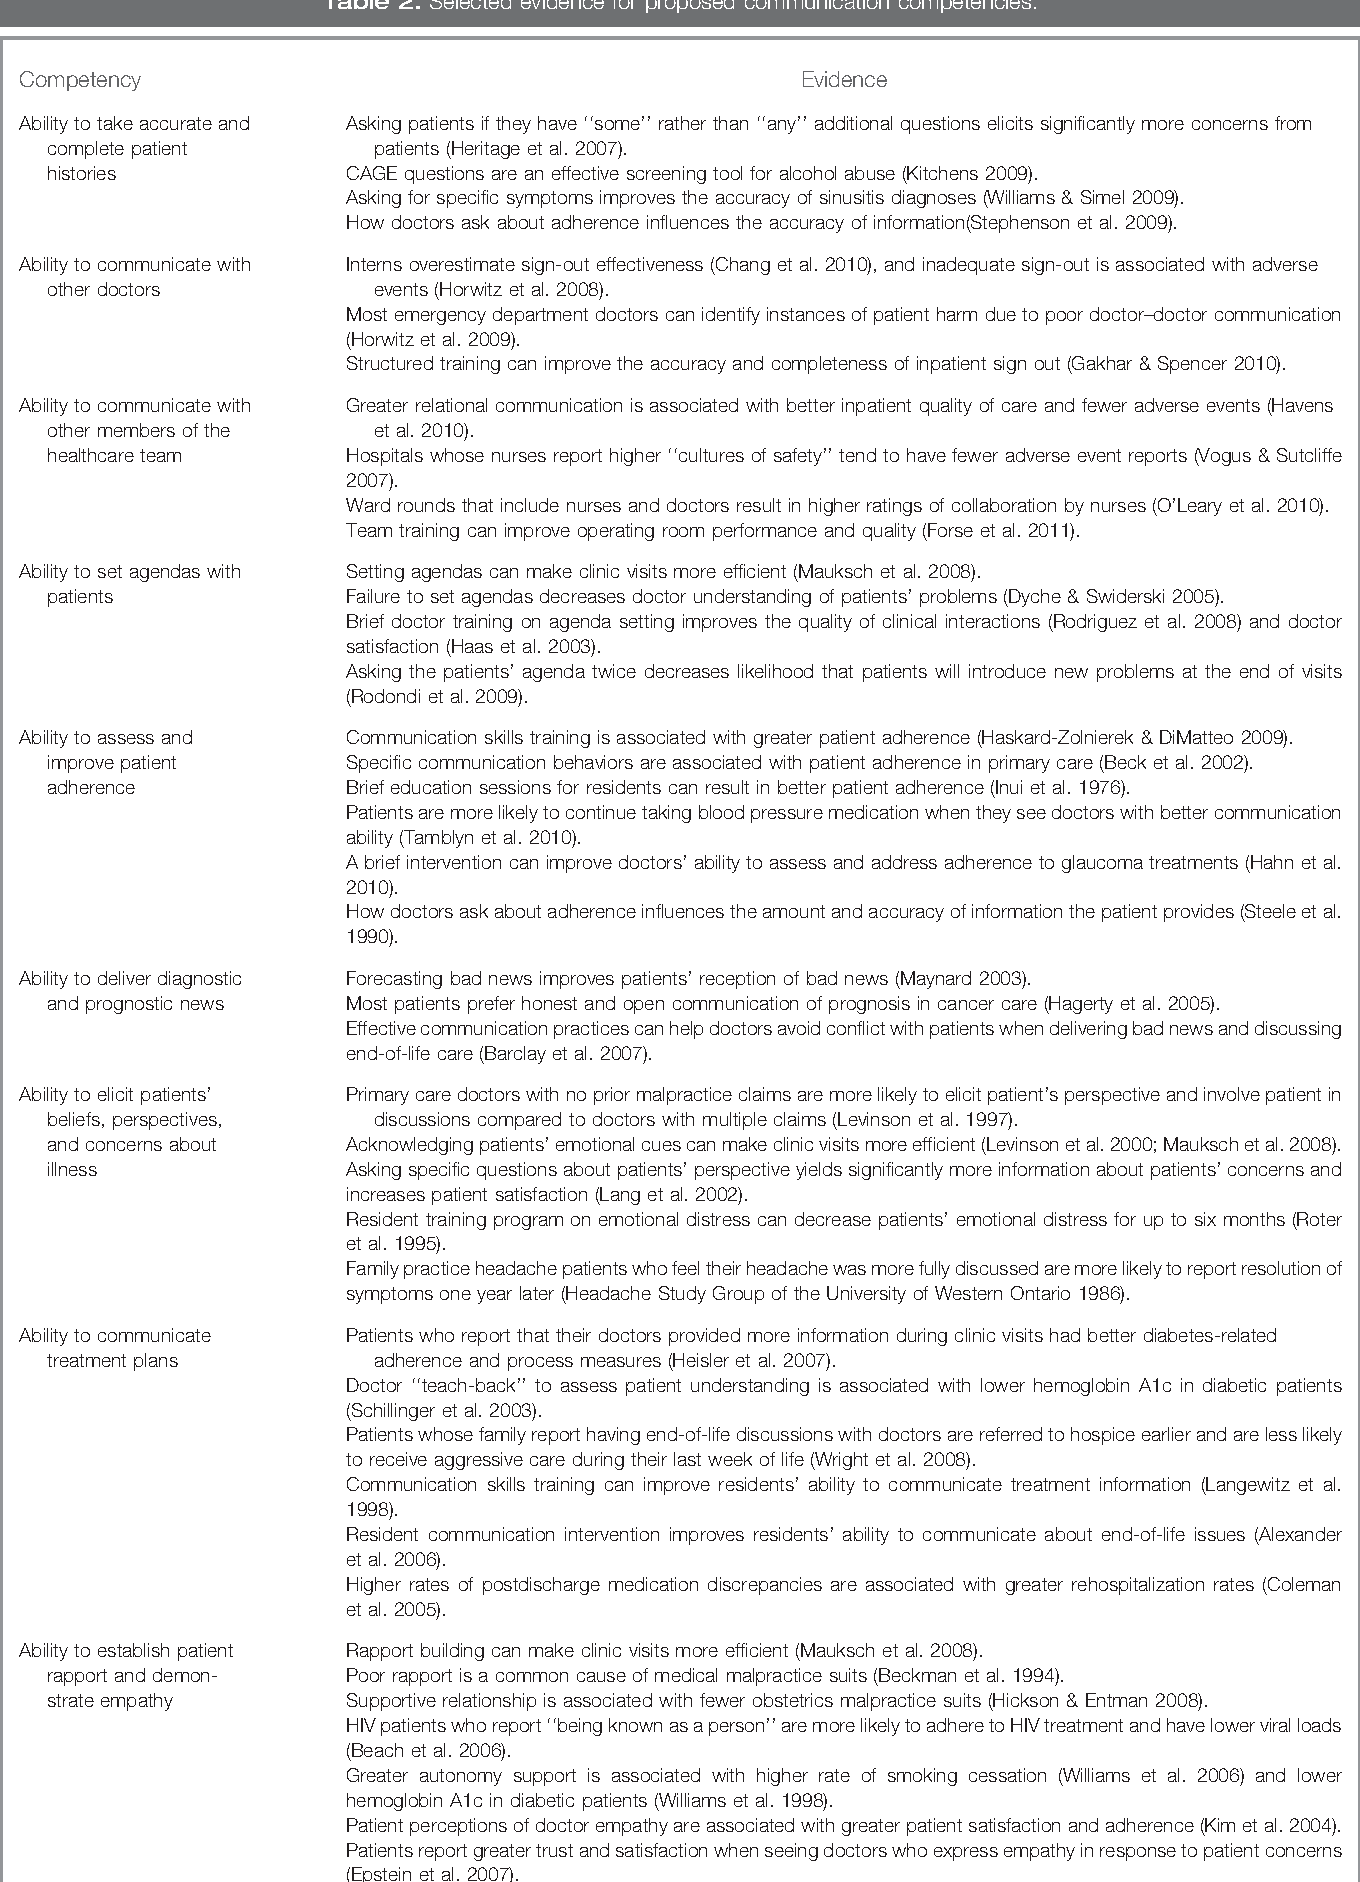 Table 2 from Evidence-based competencies for improving communication